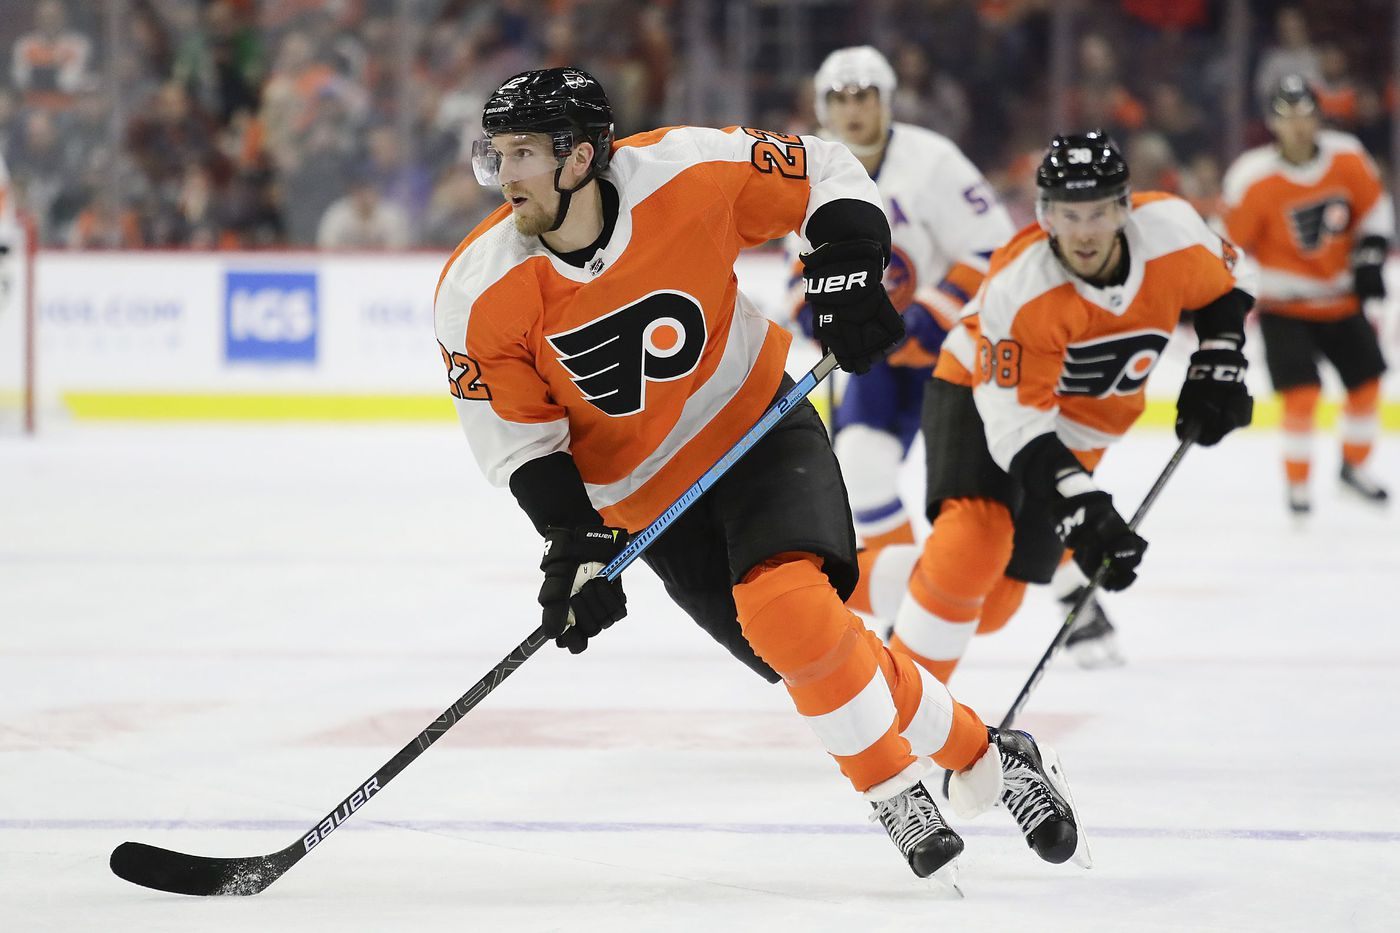 'Team guy' Dale Weise trying to stay in Flyers lineup | Sam Carchidi